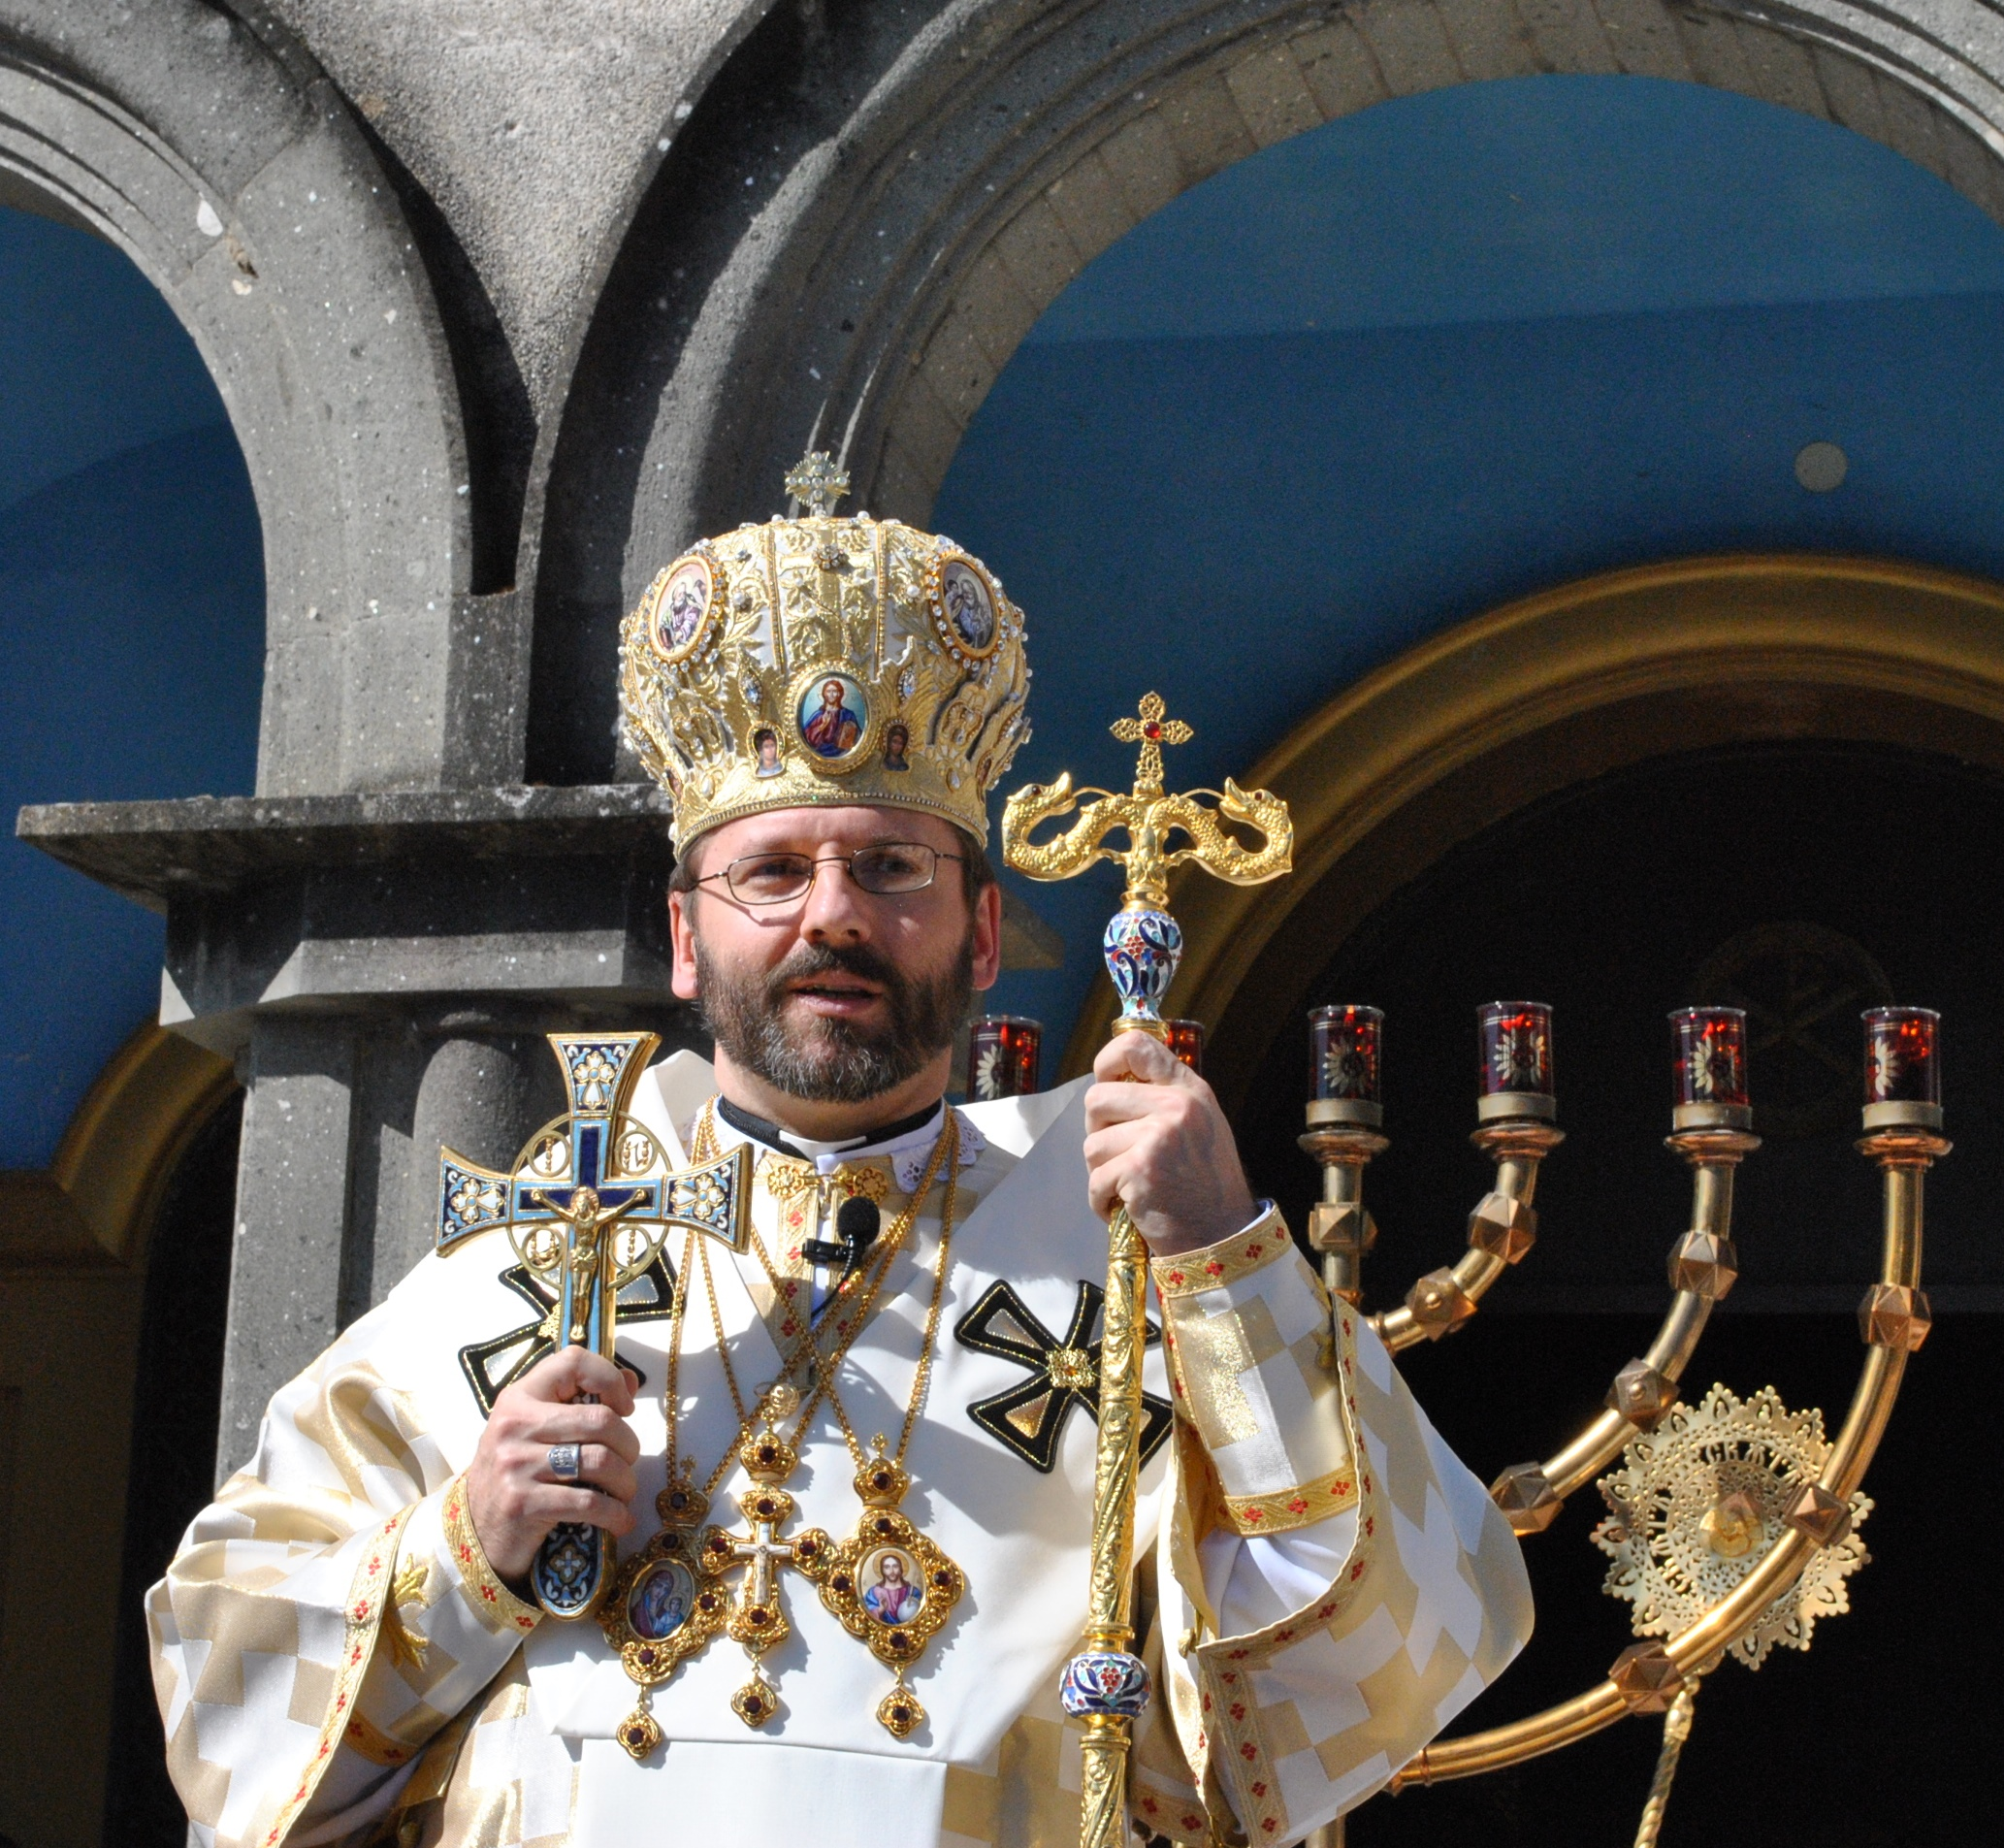 Major Archbishop Sviatoslav Shevchuk of Lvov